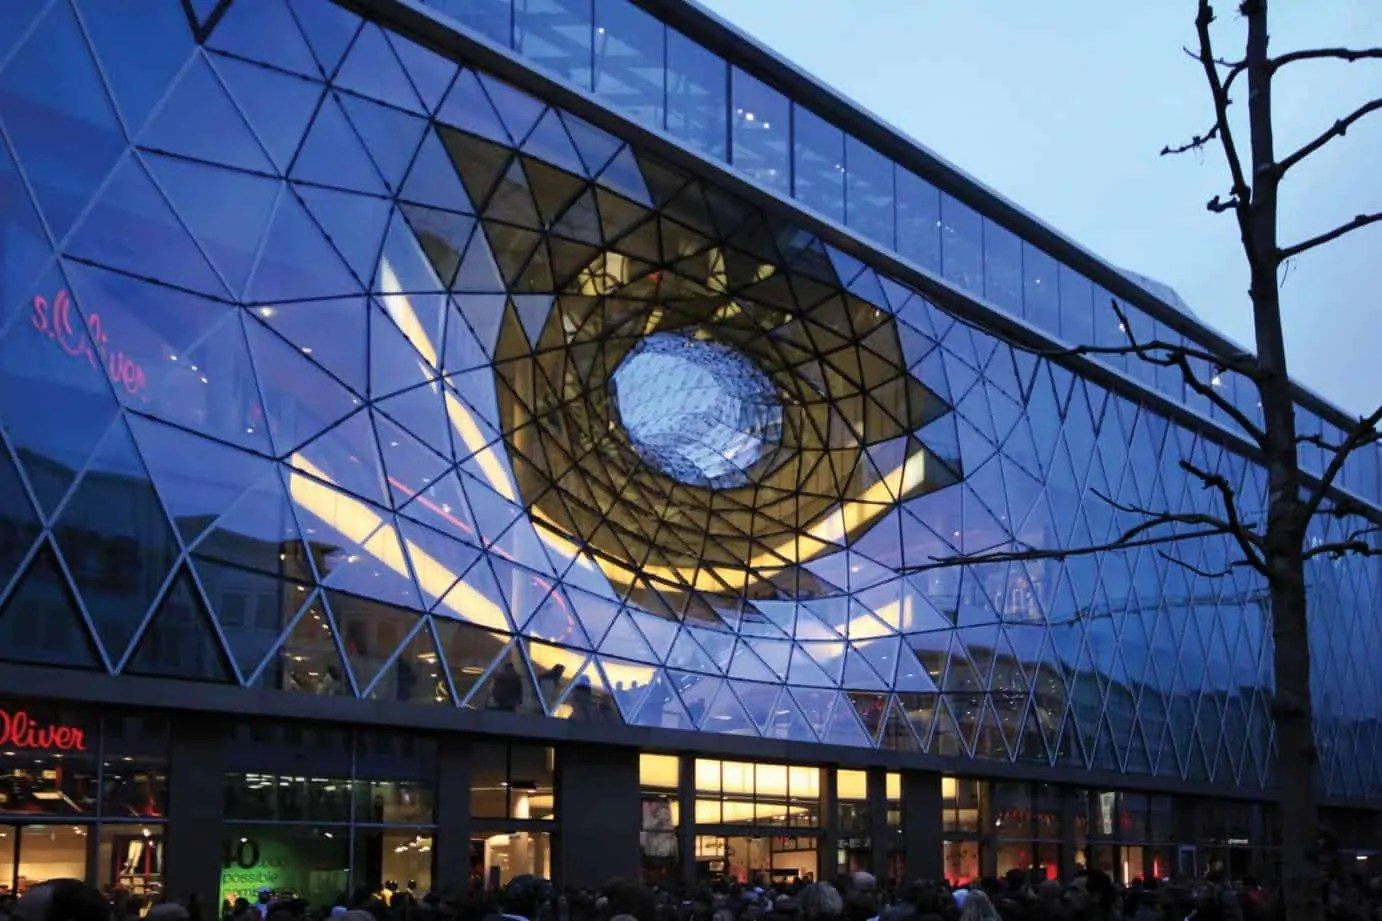 myzeil shopping mall frankfurt germany 39 s grand futuristic. Black Bedroom Furniture Sets. Home Design Ideas